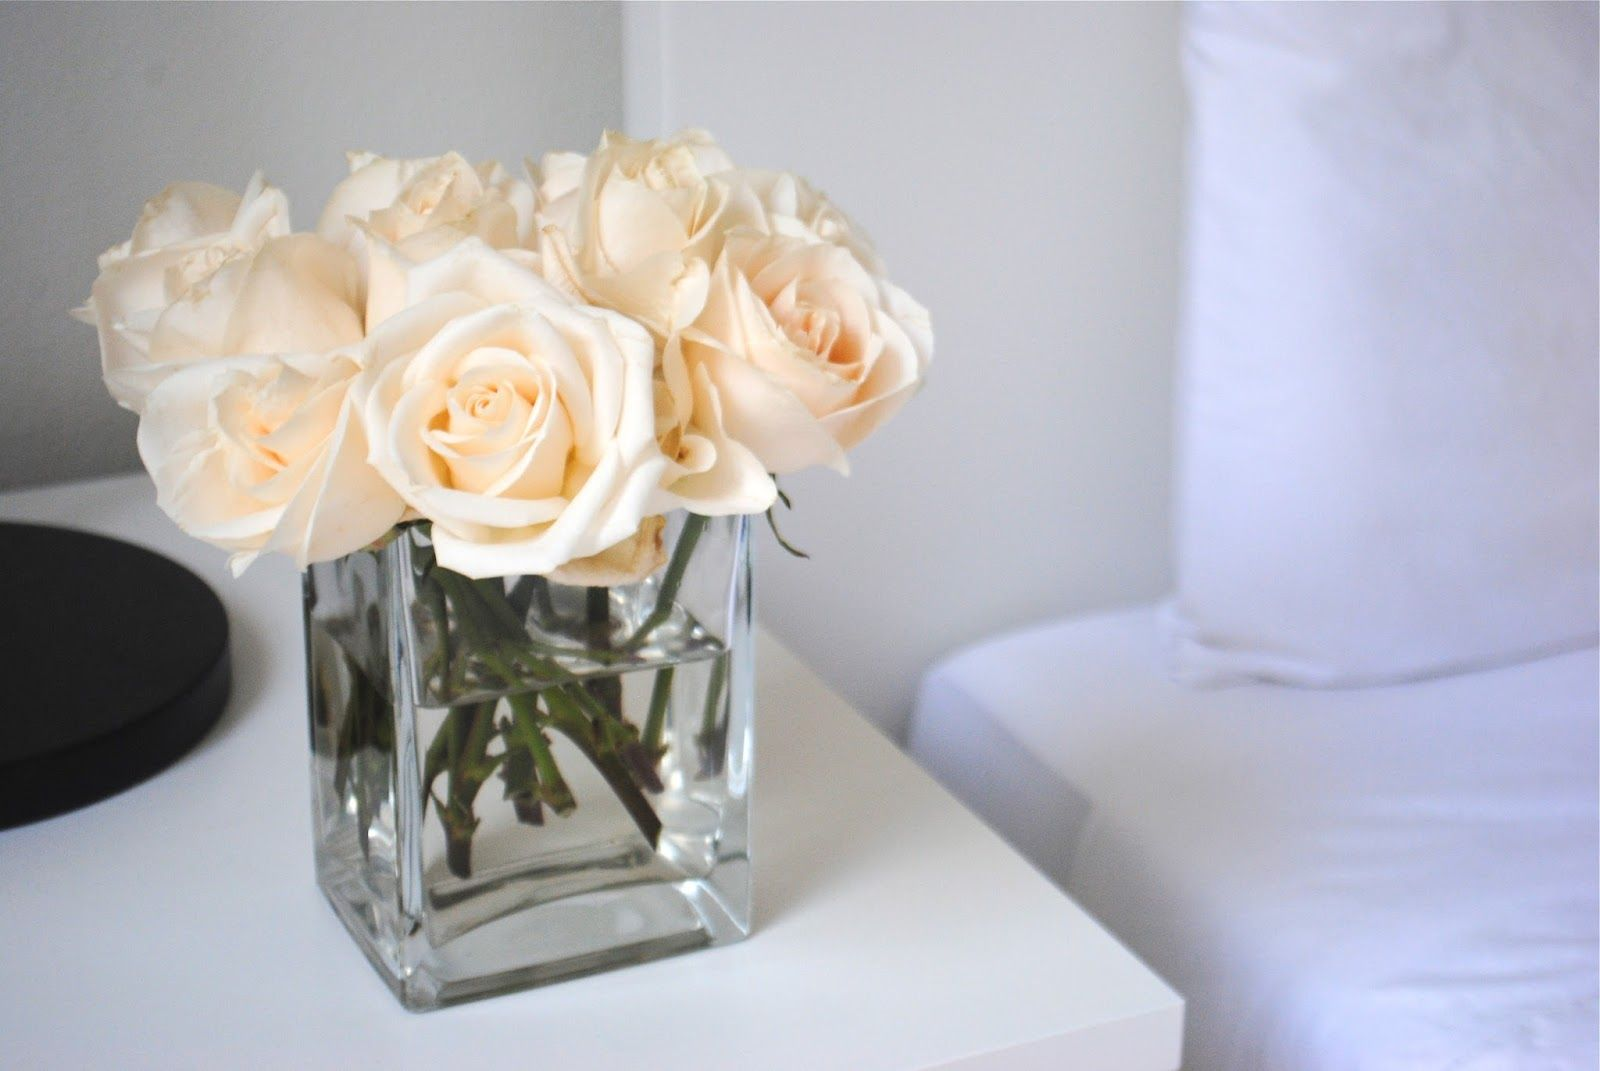 How to arrange roses in a short vase to brighten up your bedroom how to arrange roses in a short vase to brighten up your bedroom reviewsmspy